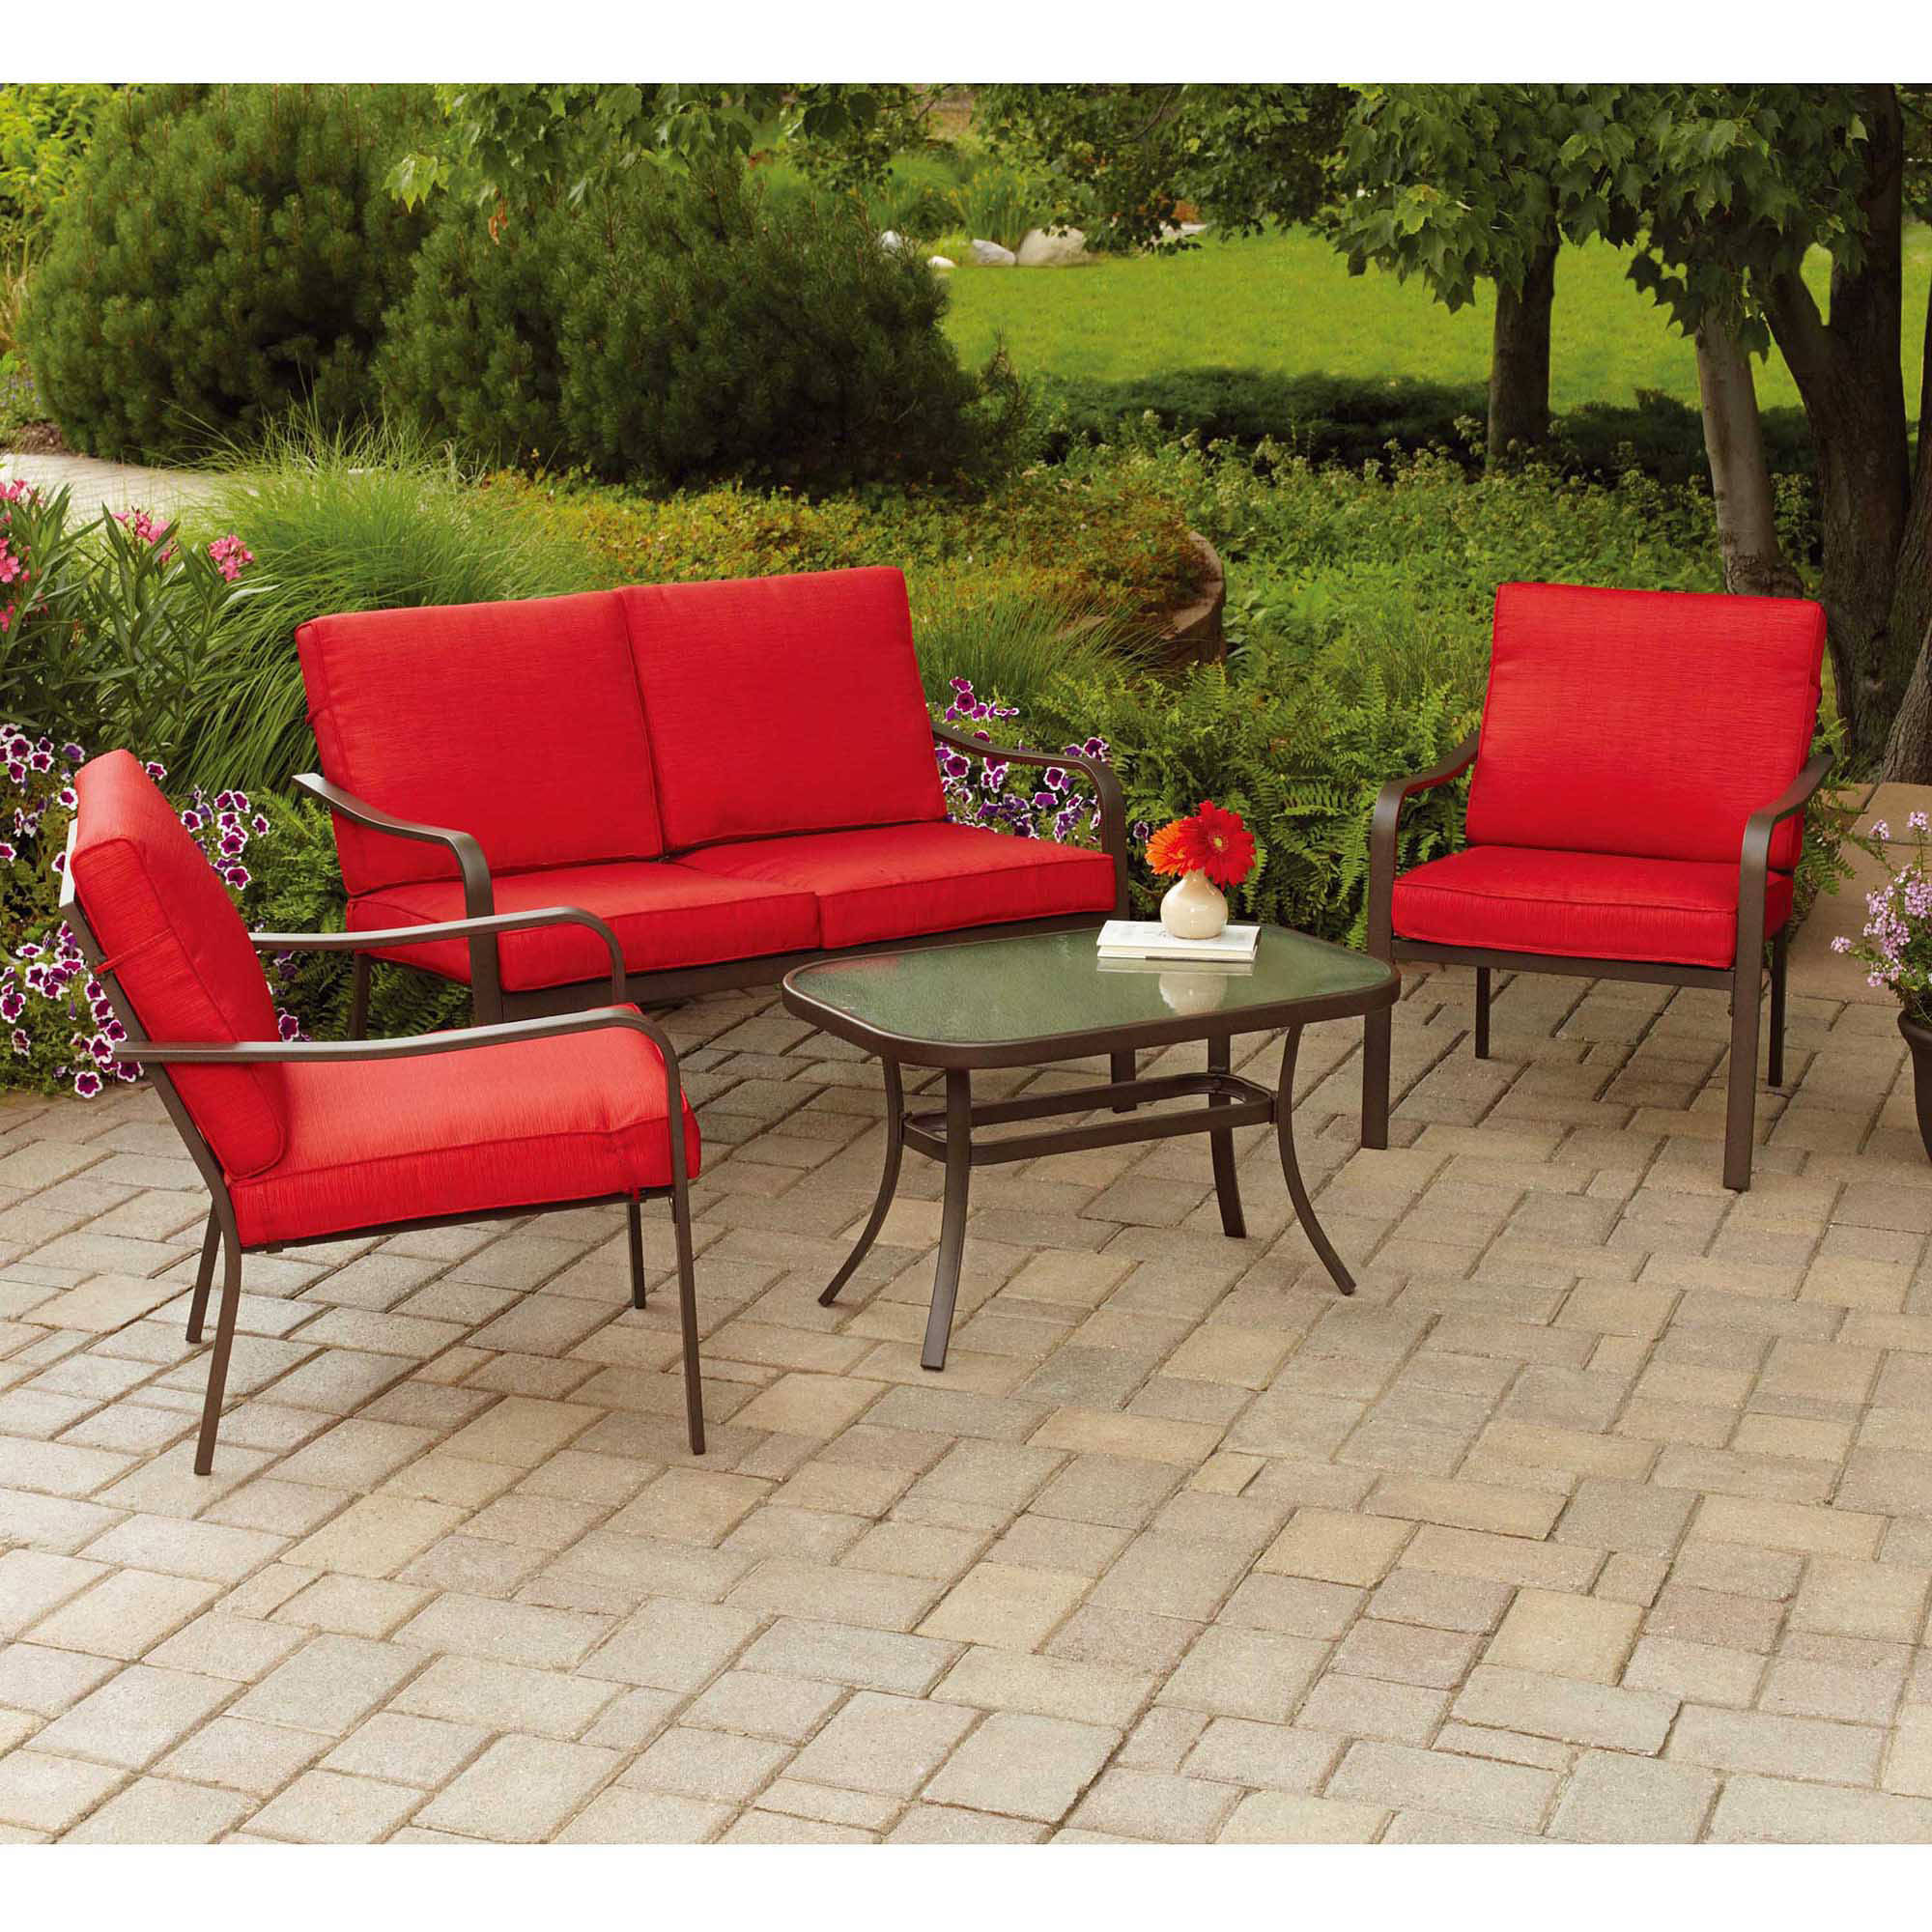 Superbe Mainstays Stanton Cushioned 4 Piece Patio Conversation Set, Seats 4 ...